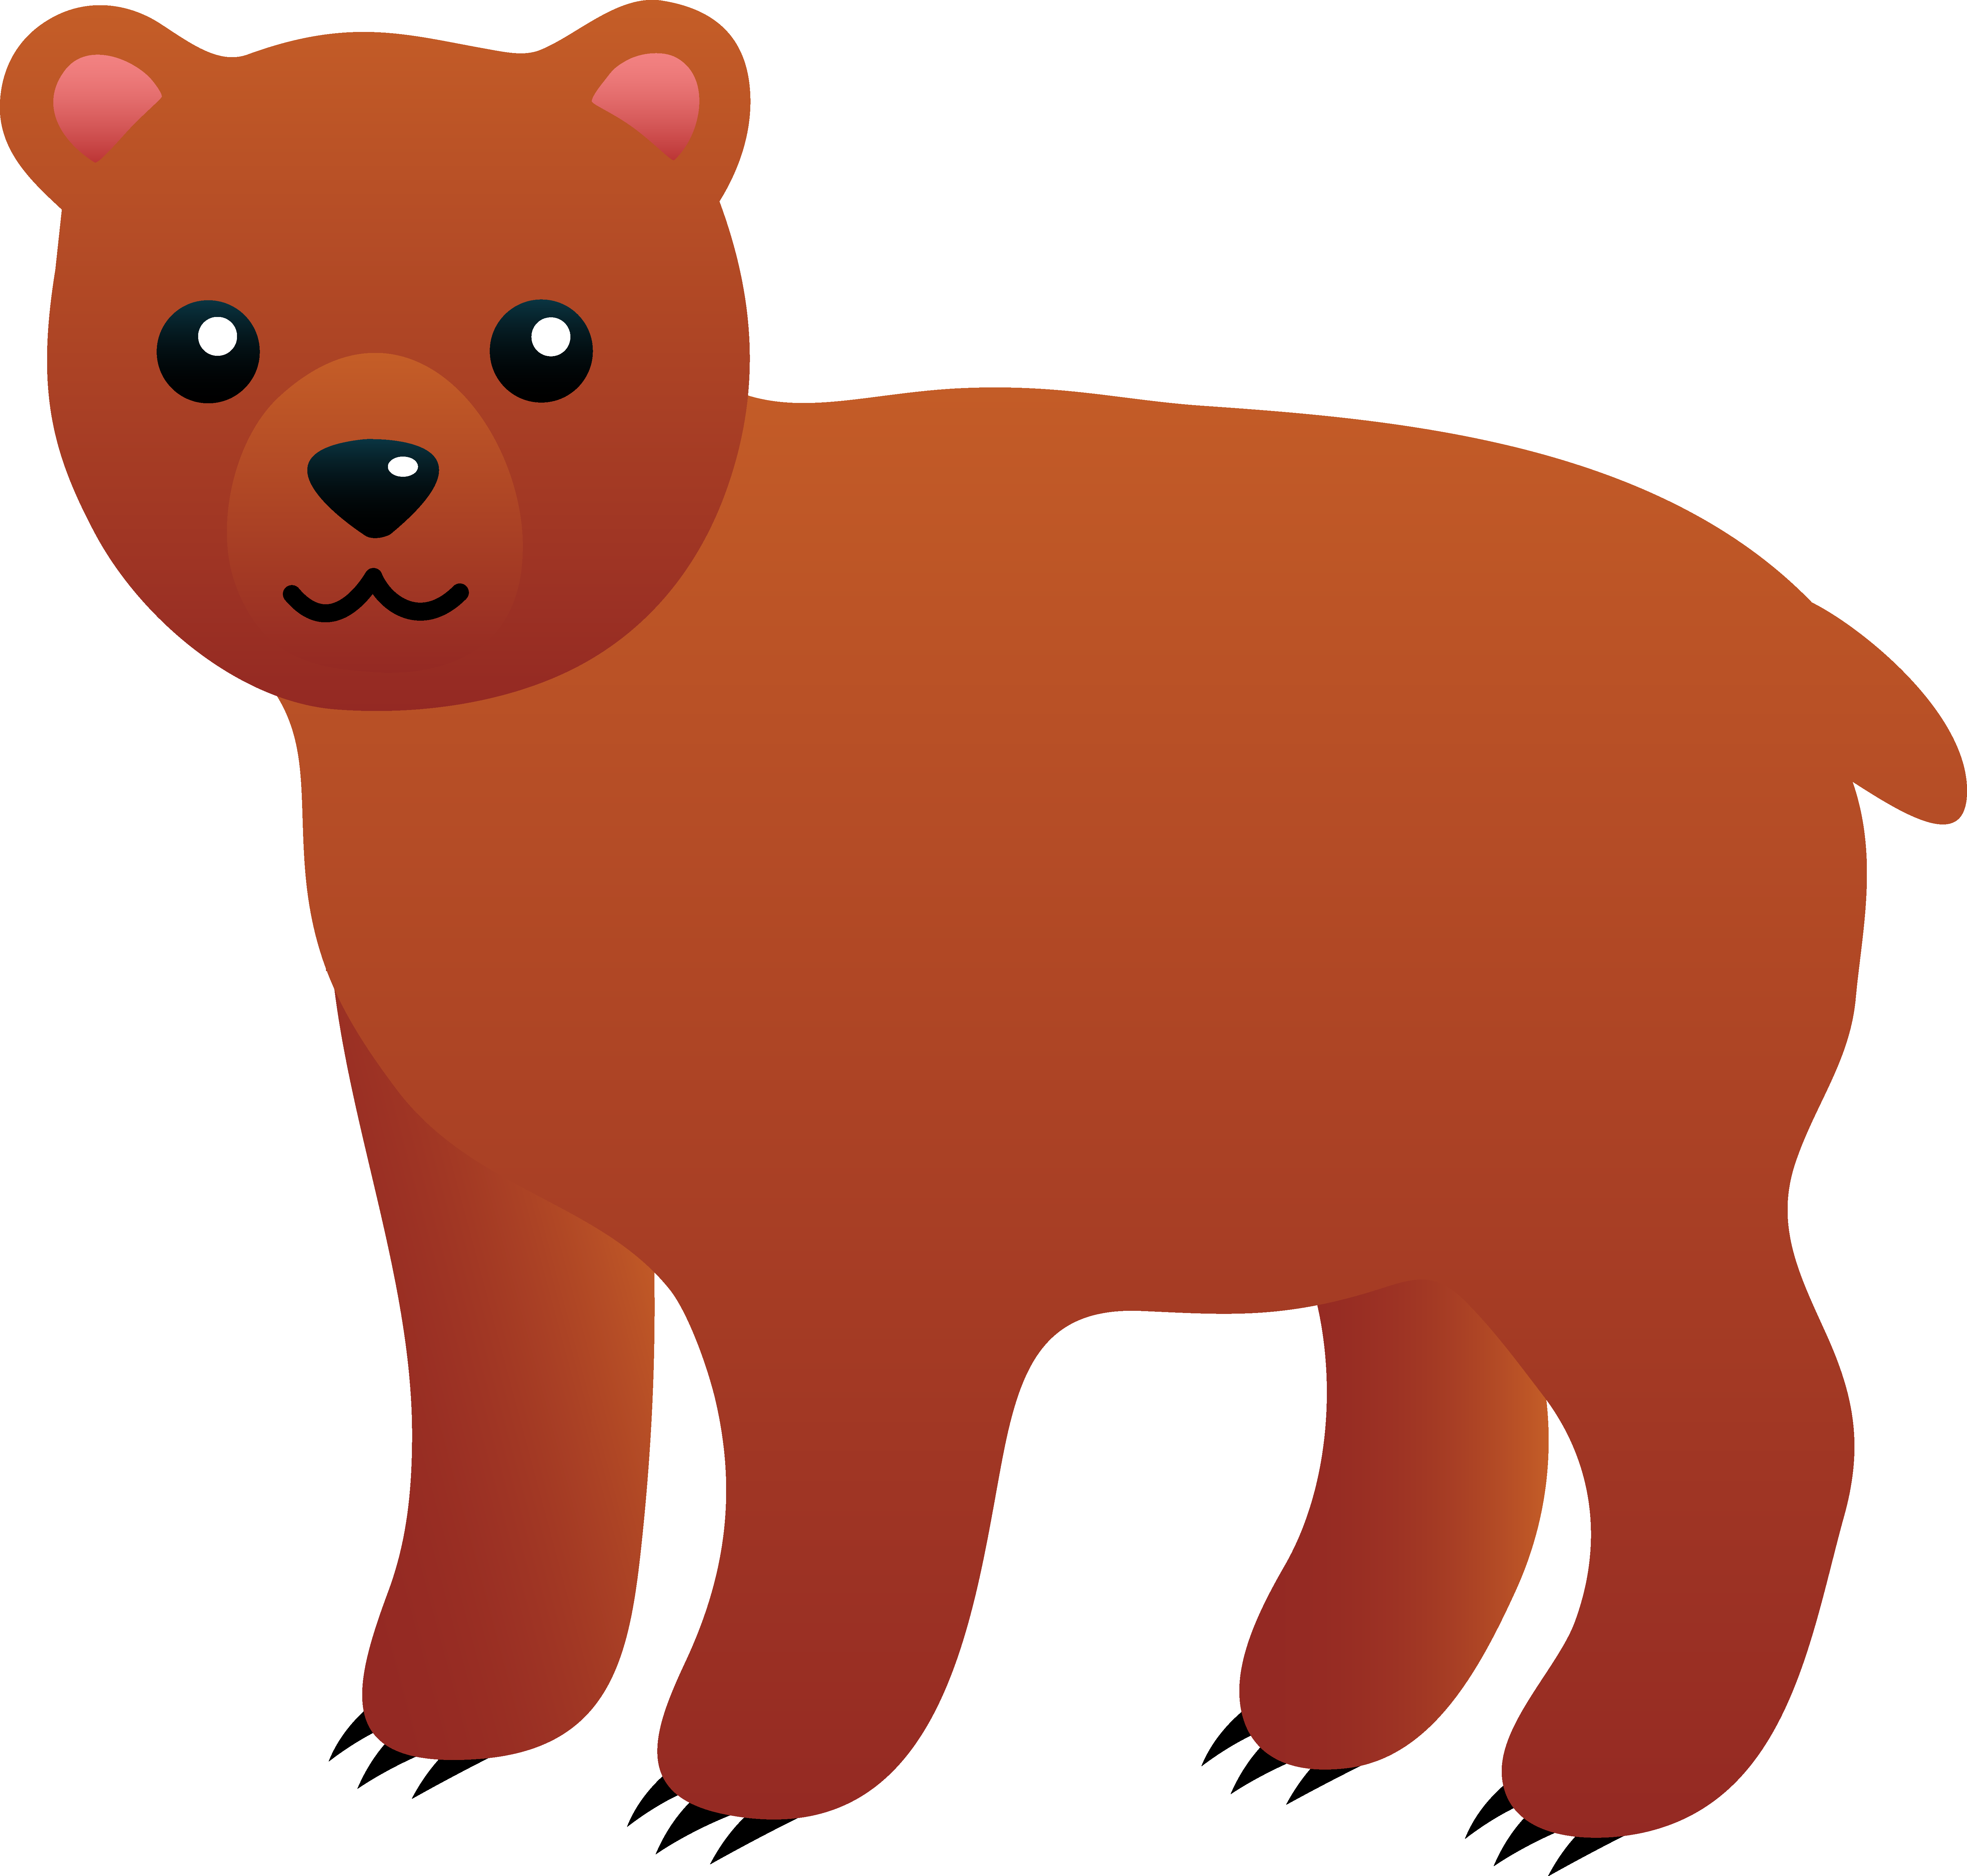 Cat bear clipart picture library Free Bear Cub Cliparts, Download Free Clip Art, Free Clip Art on ... picture library